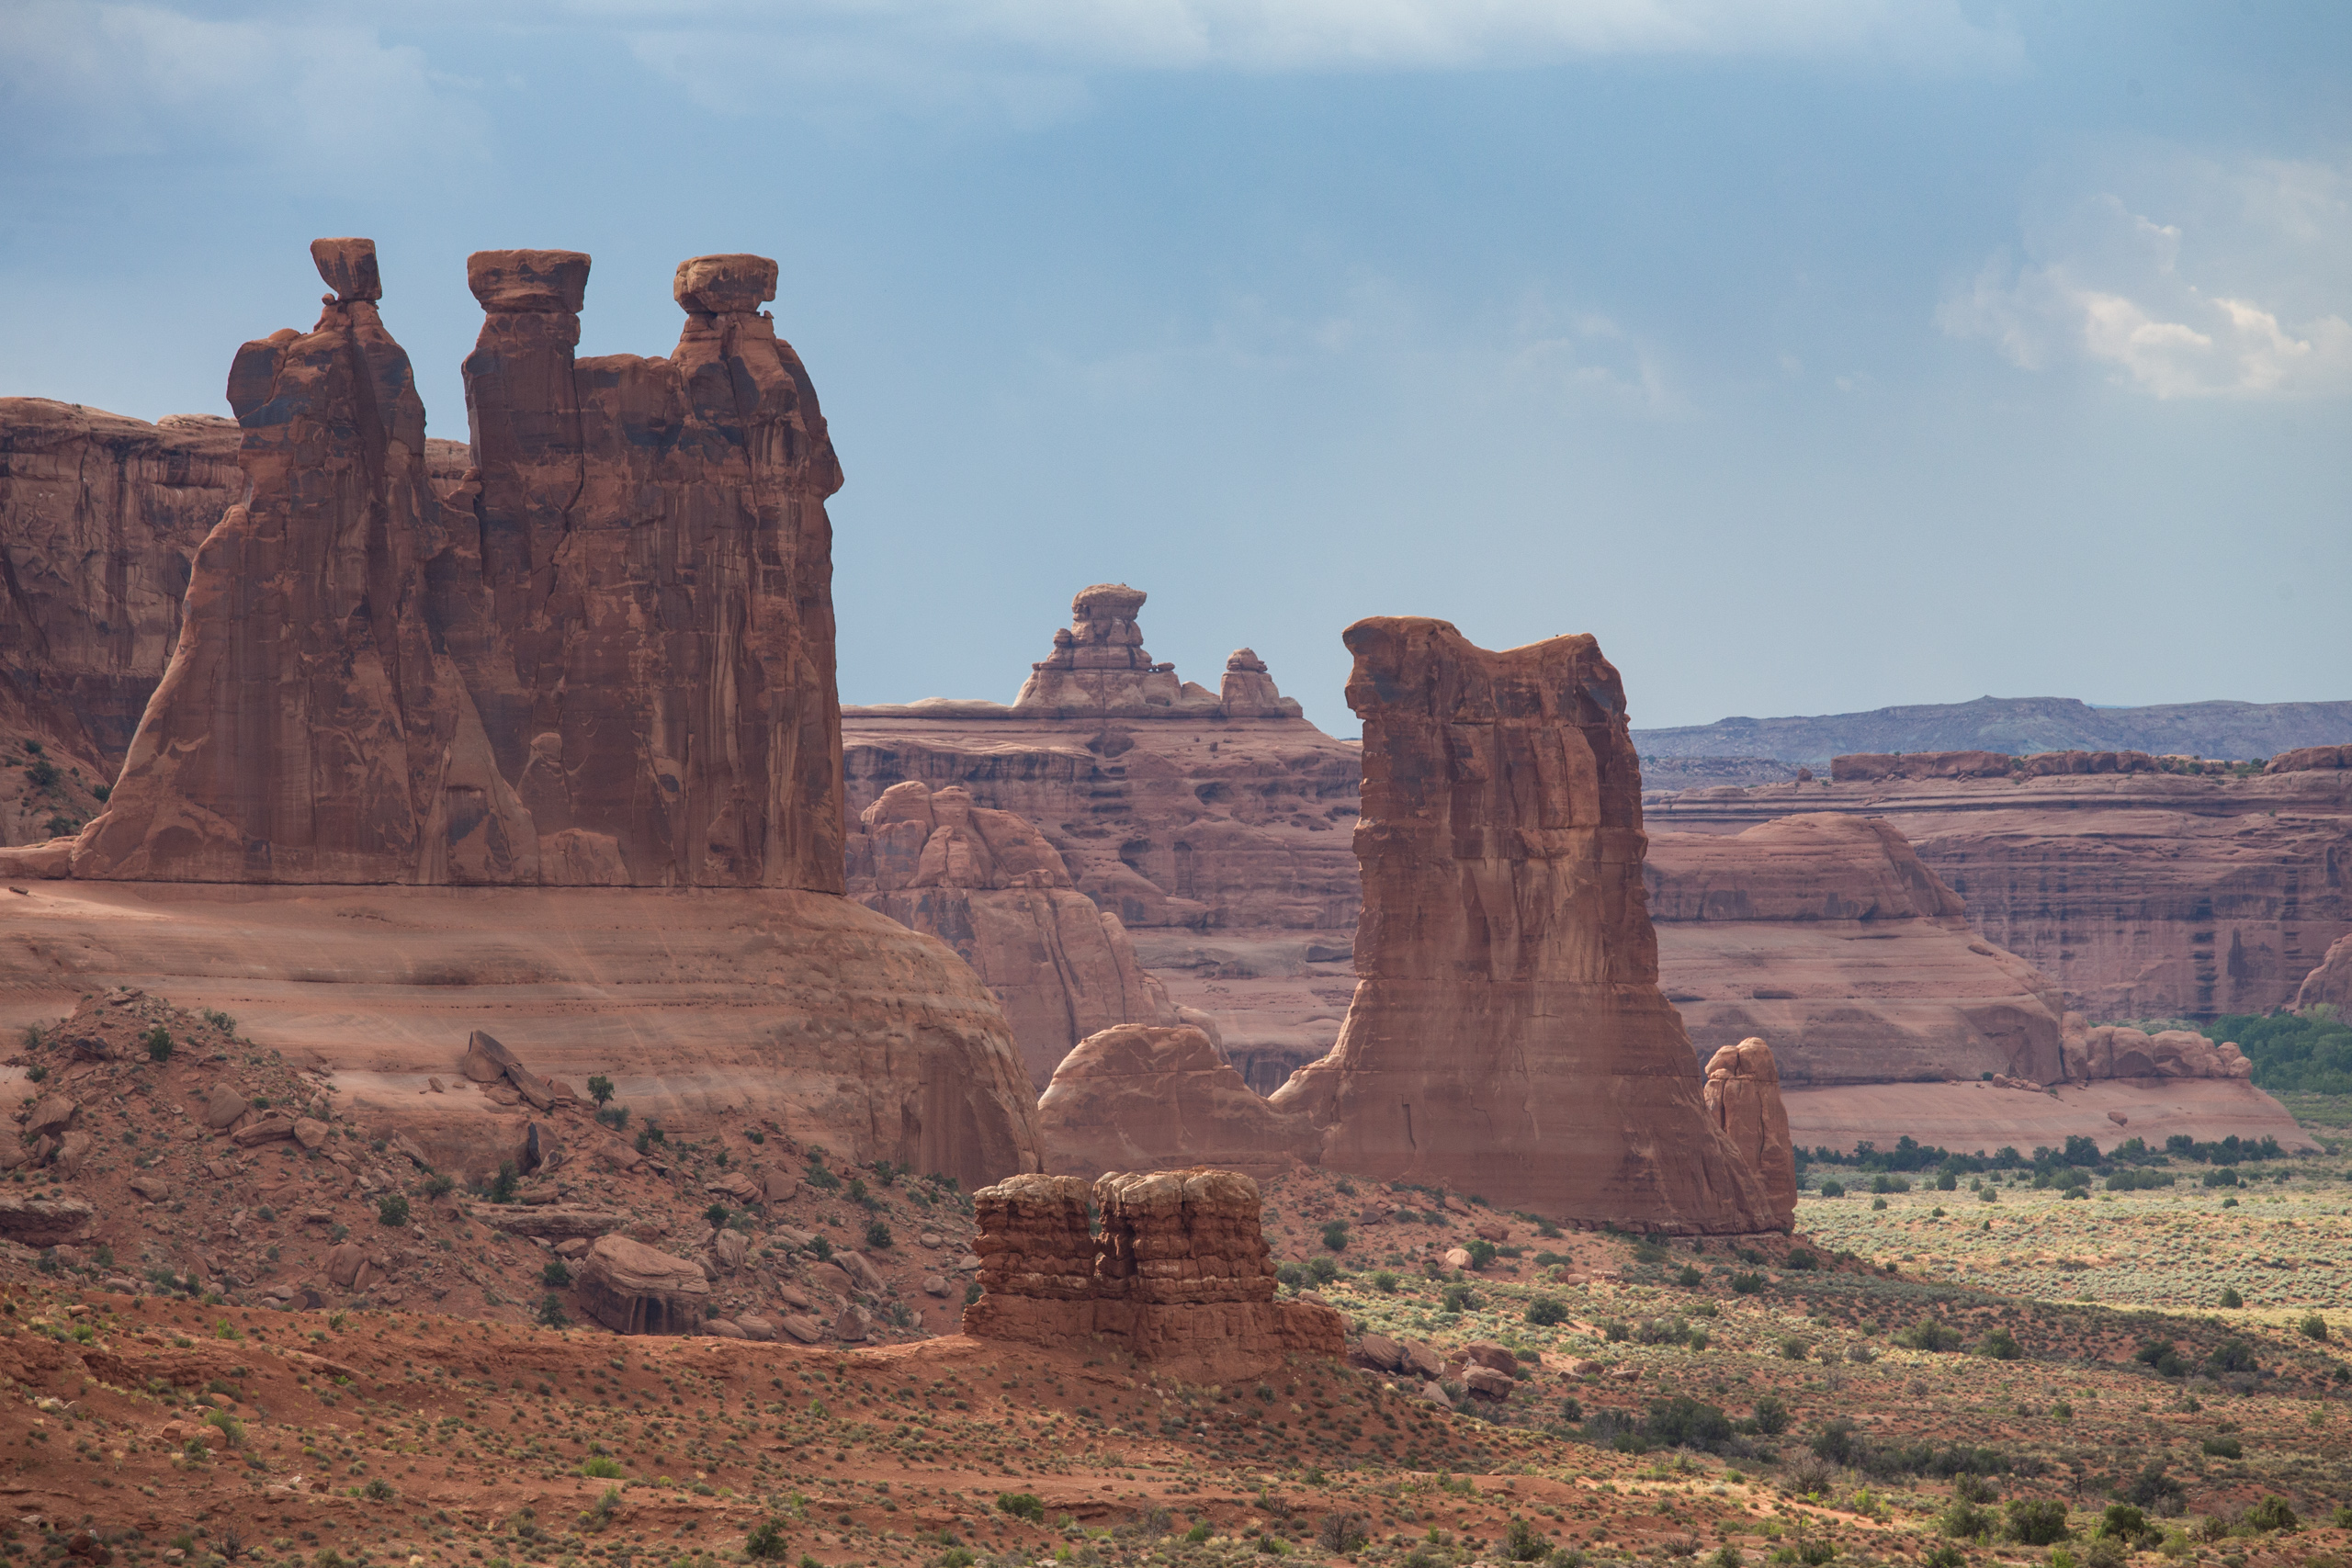 Arches National Park - The Three Gossips.